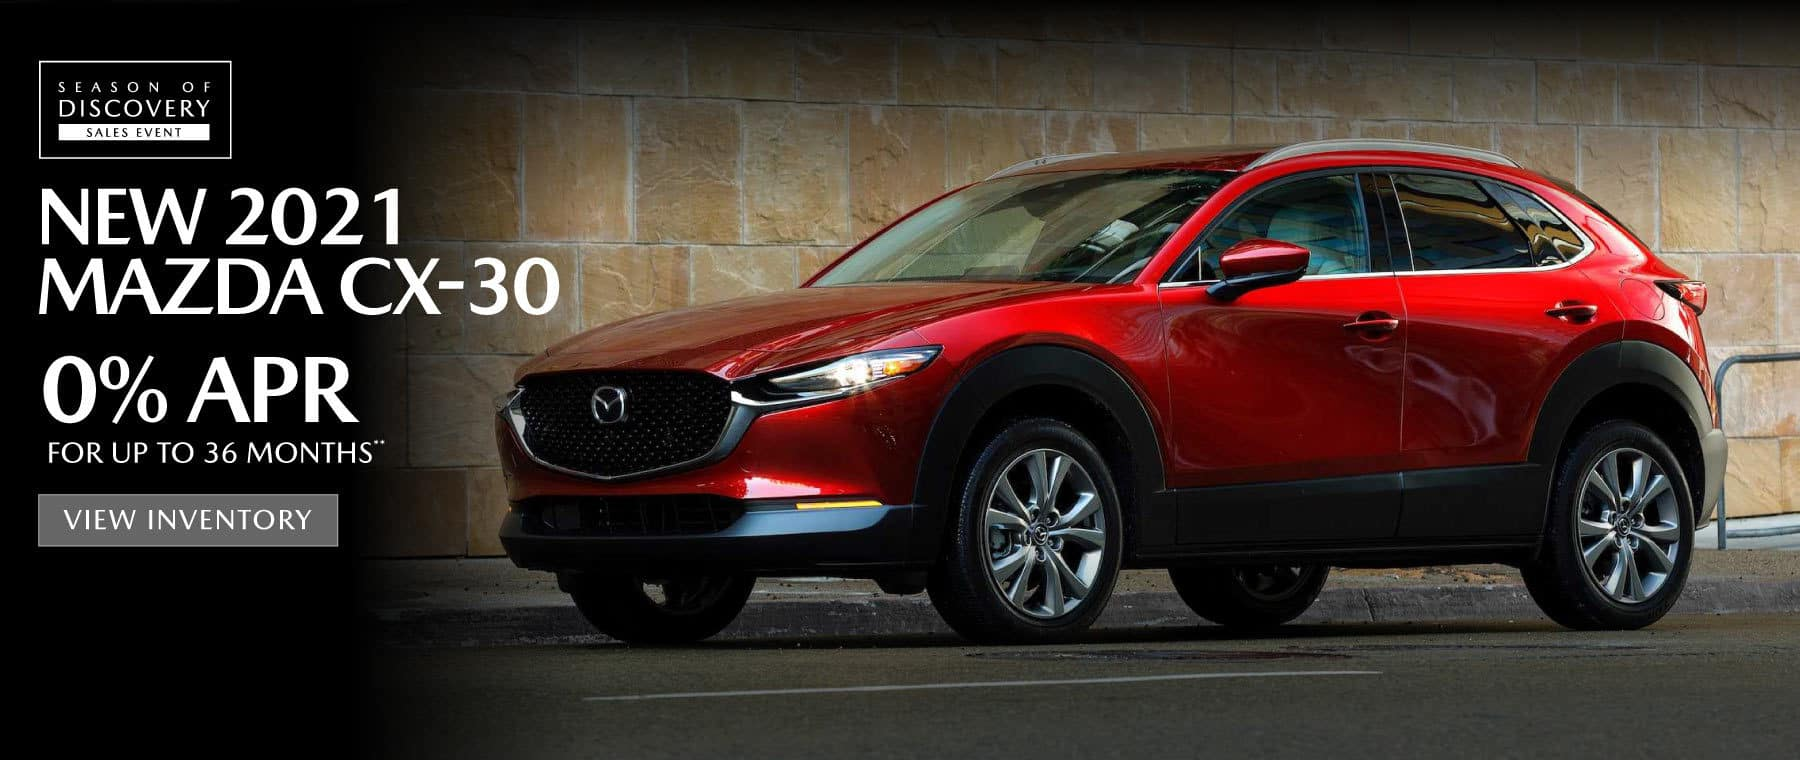 2021 Mazda CX-30   0% APR for up to 36 months   View Inventory